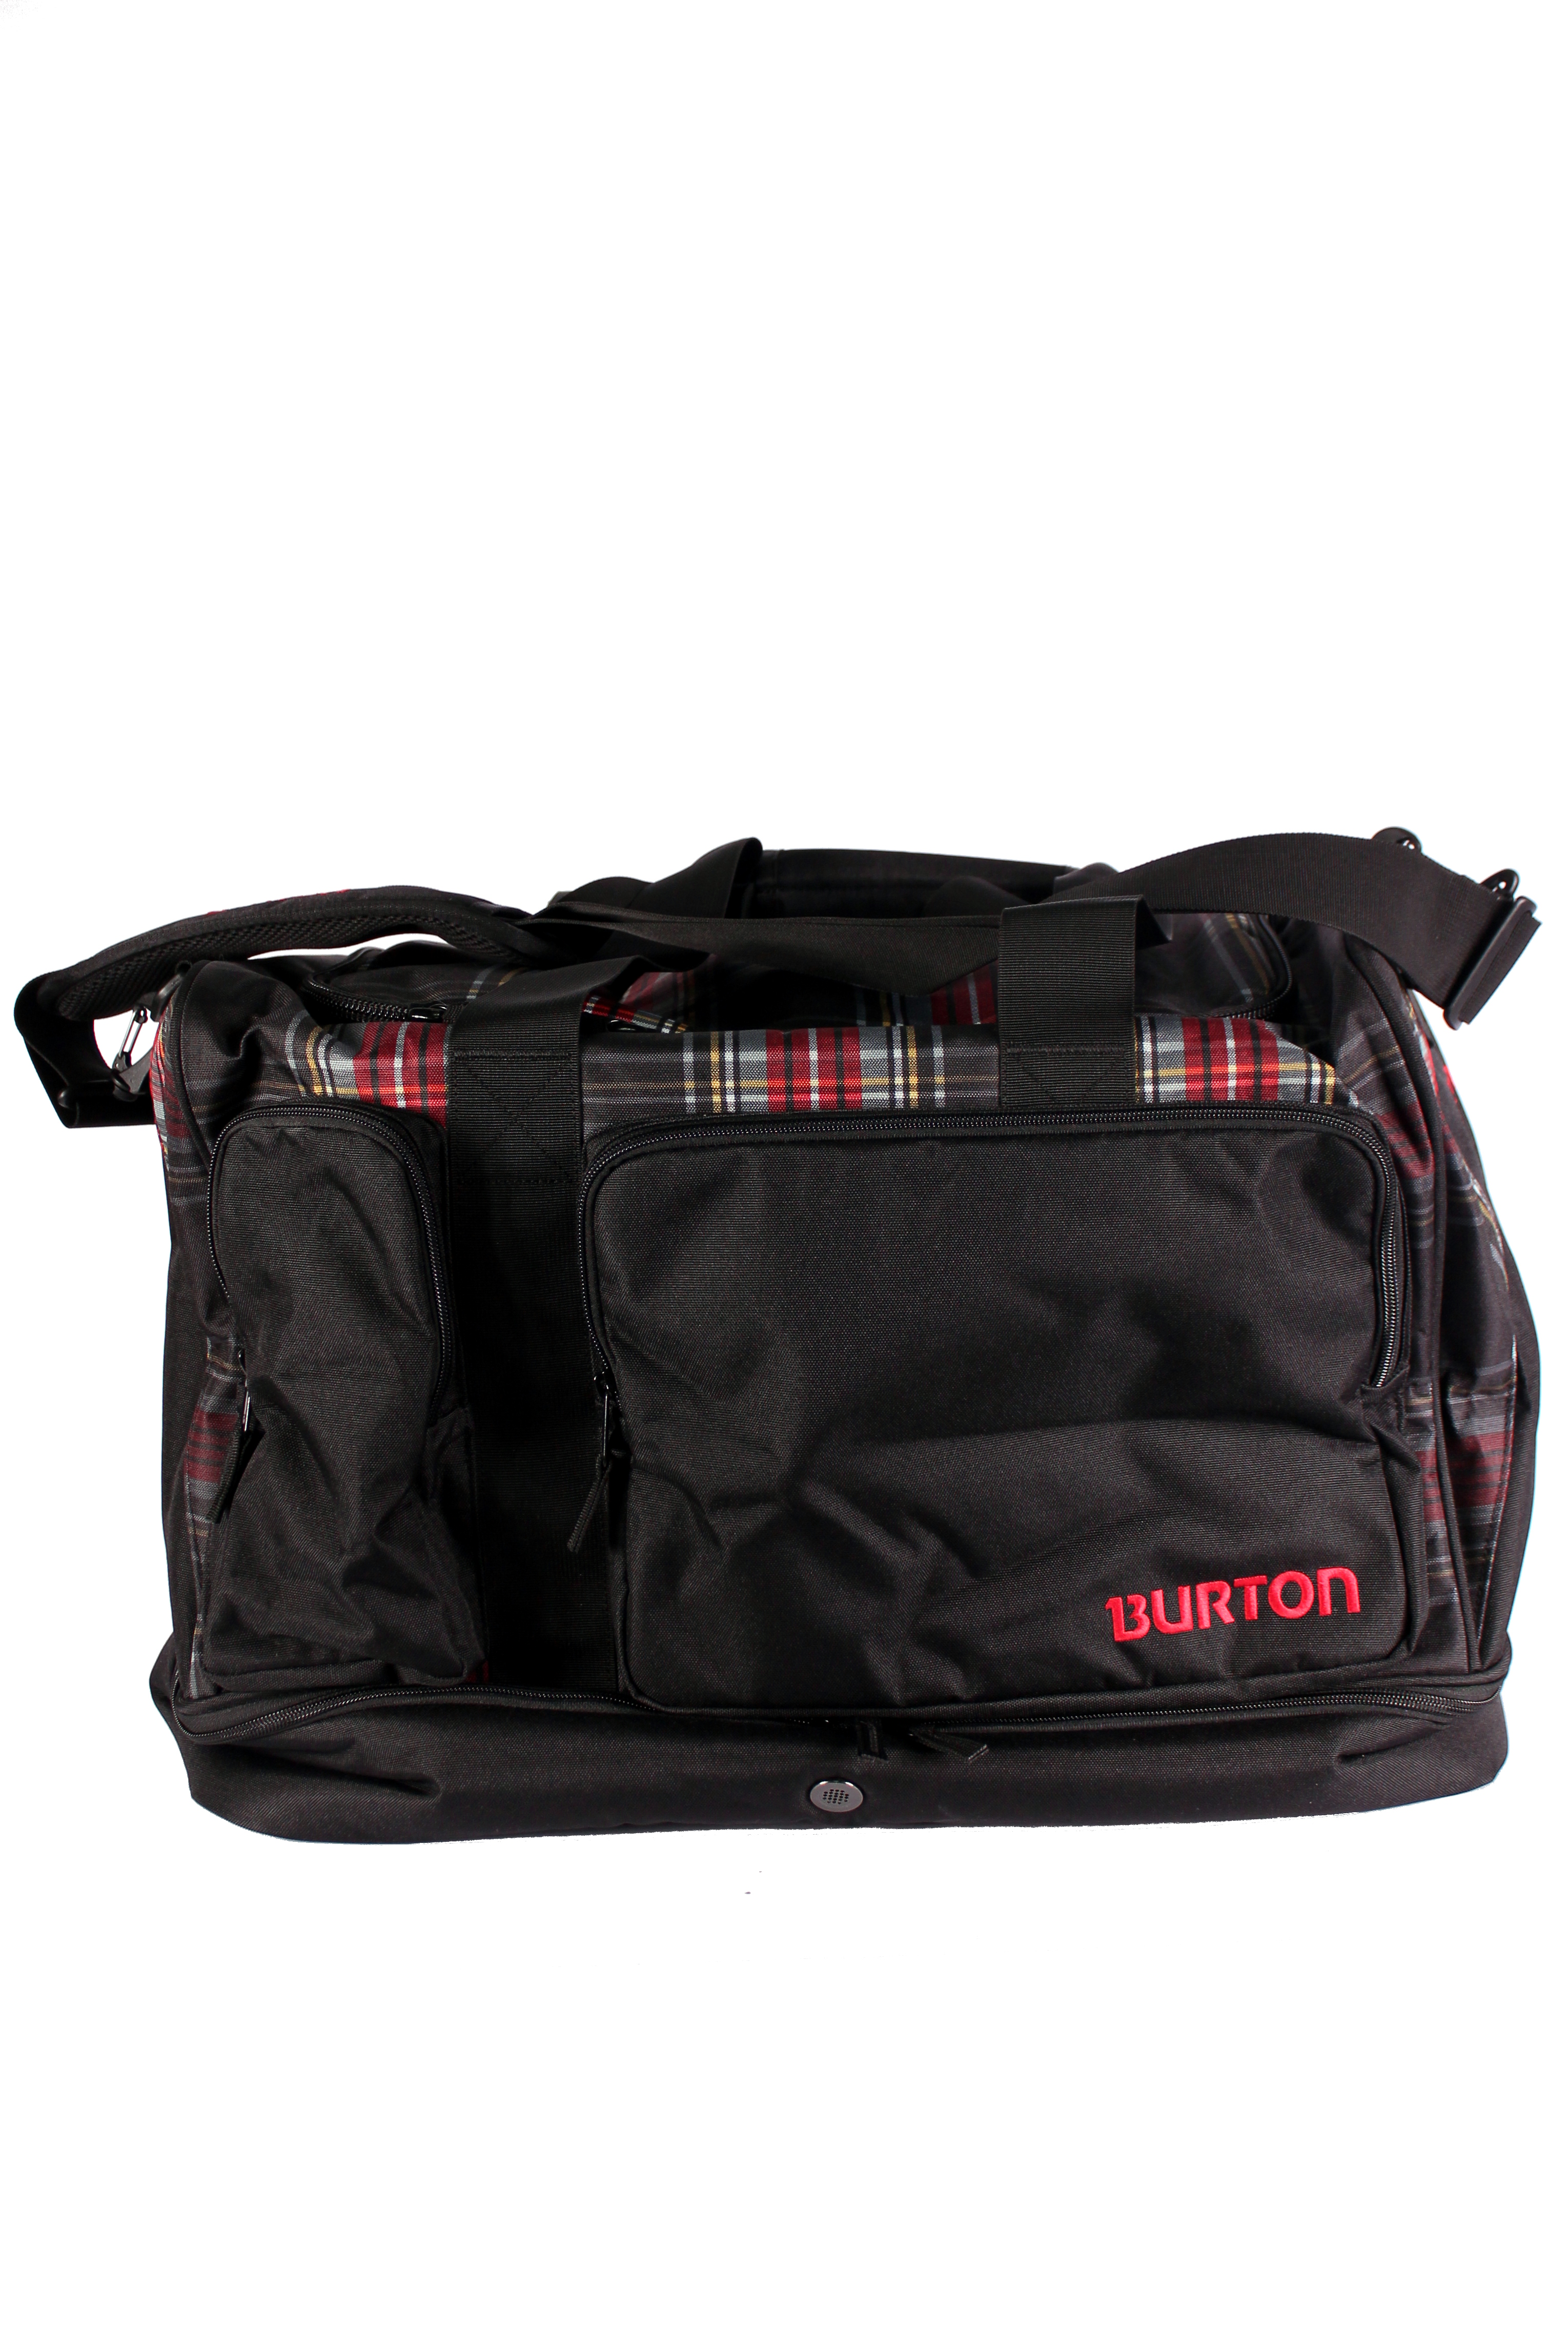 Torba Burton Riders Bag (Black Plaid)